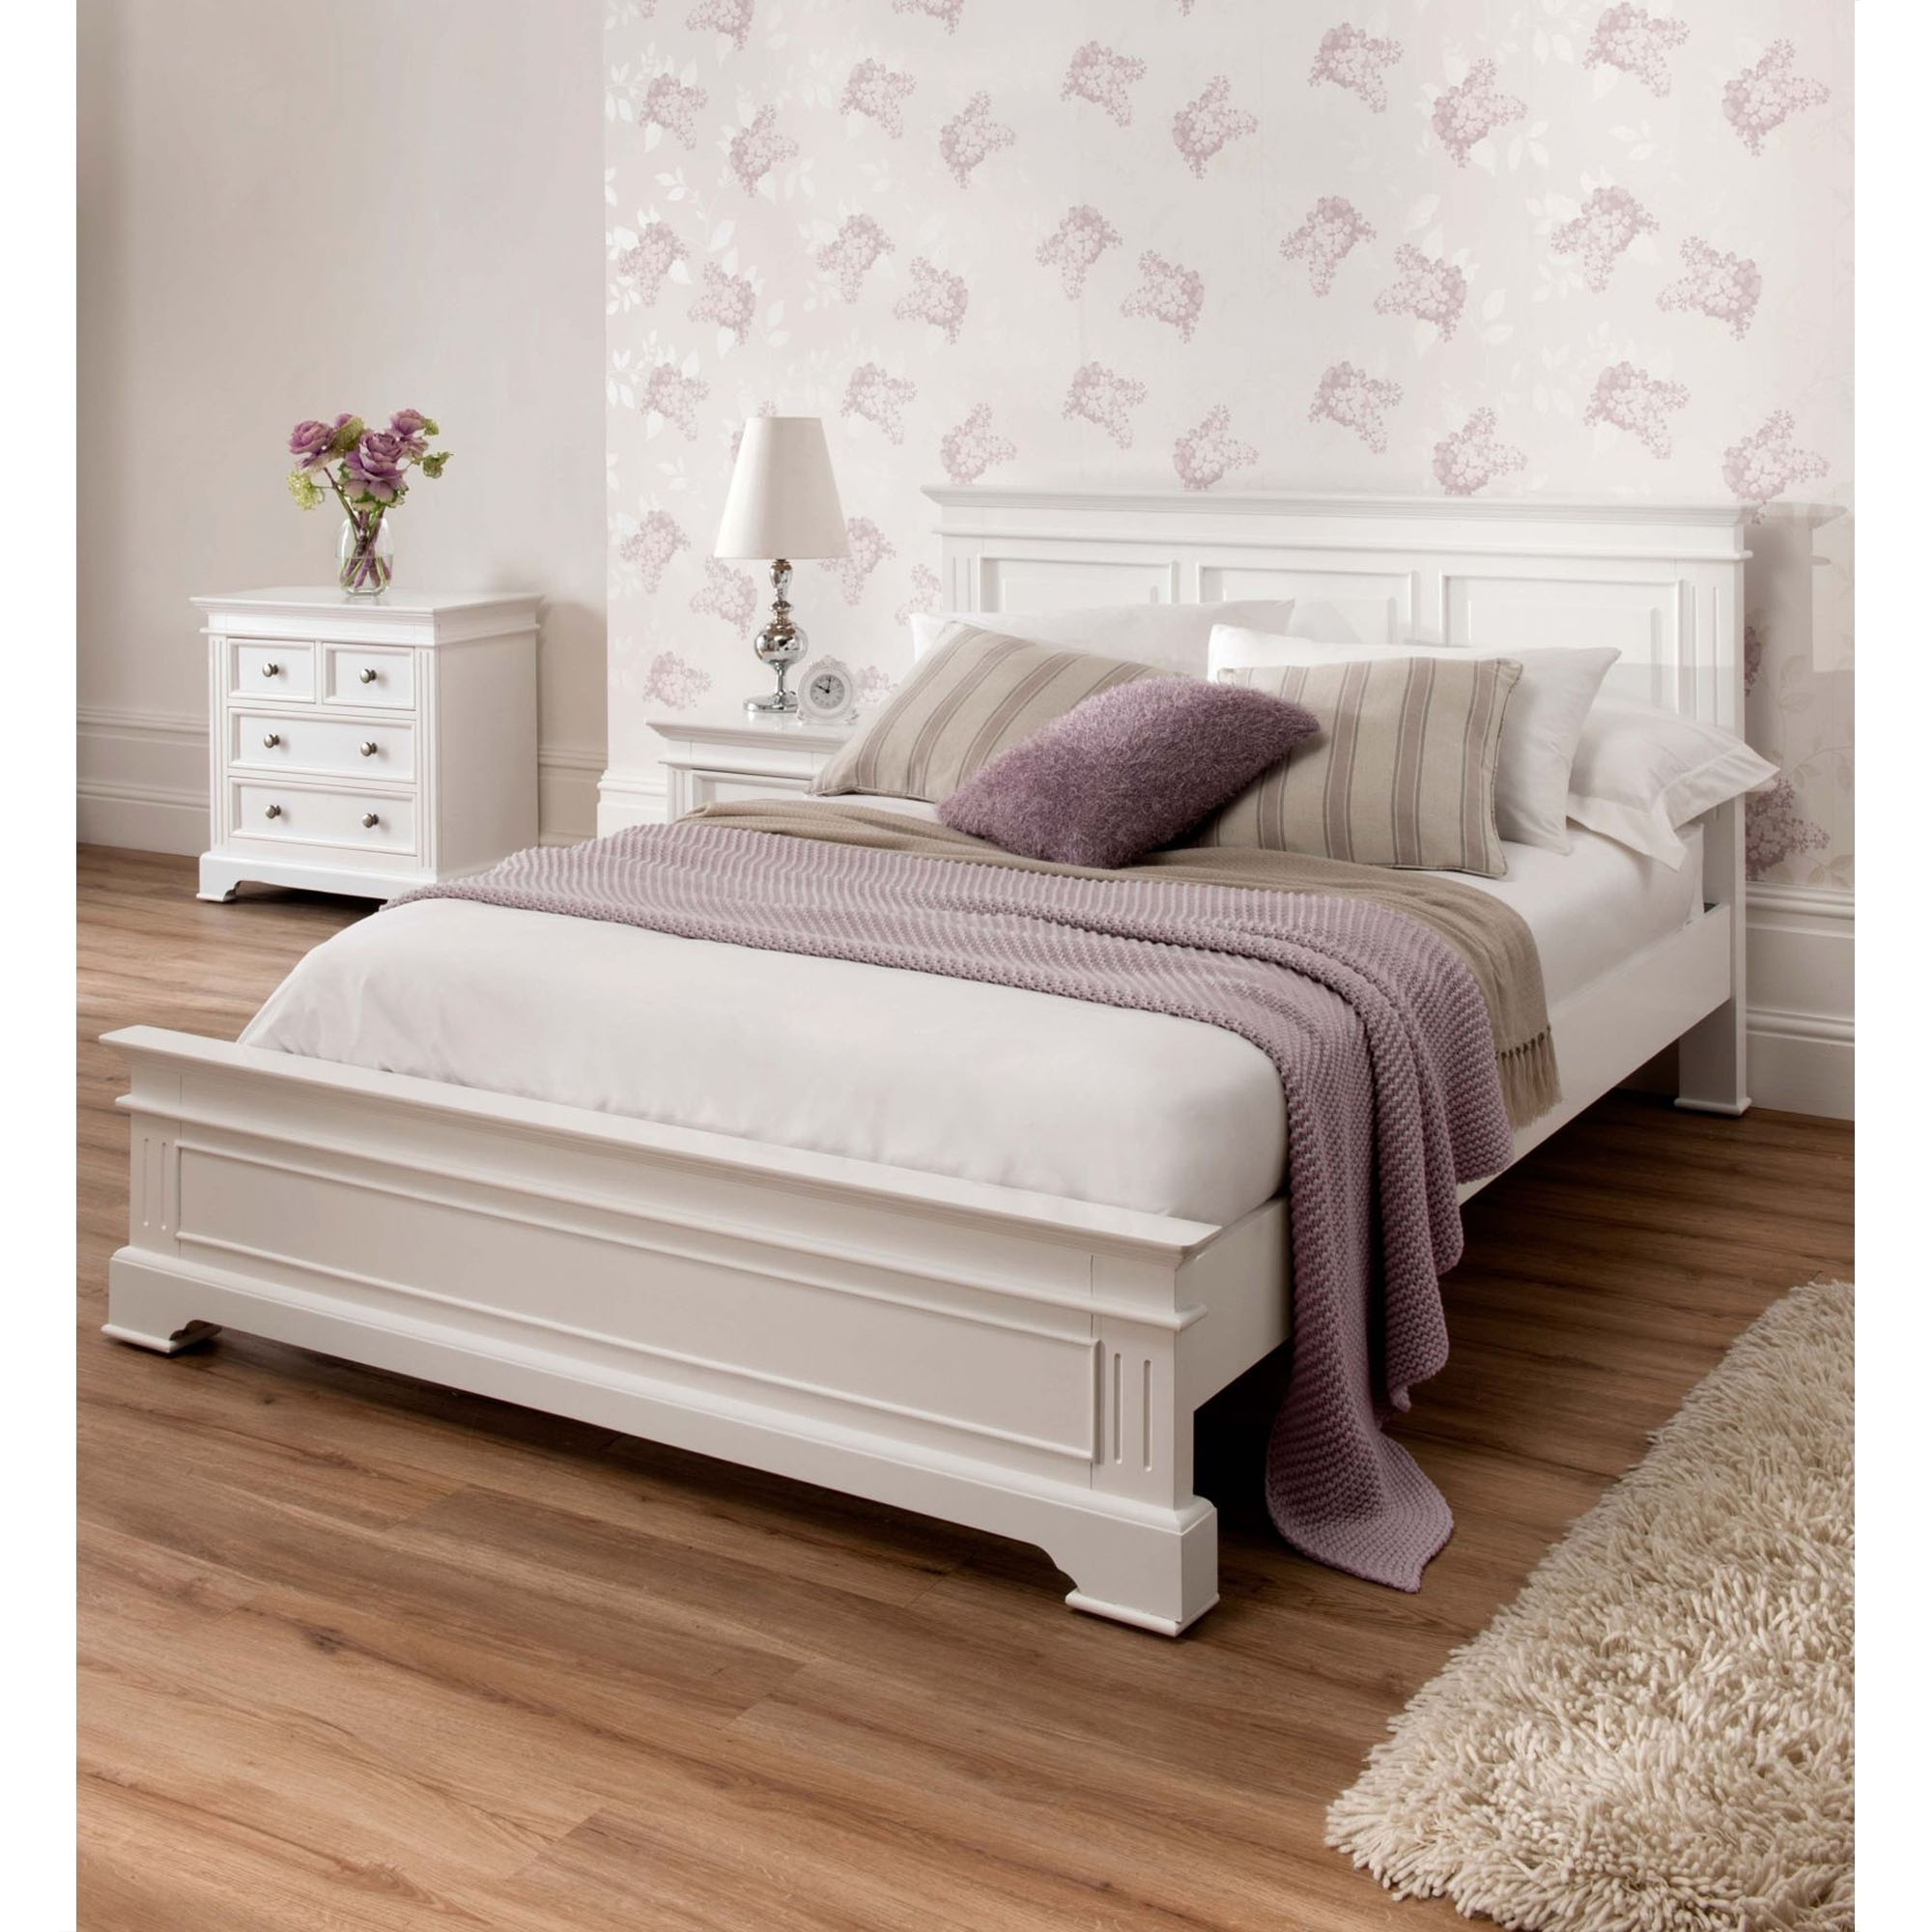 With This Marvelous Sohpia Chic Bed You Are Guaranteed Beauty